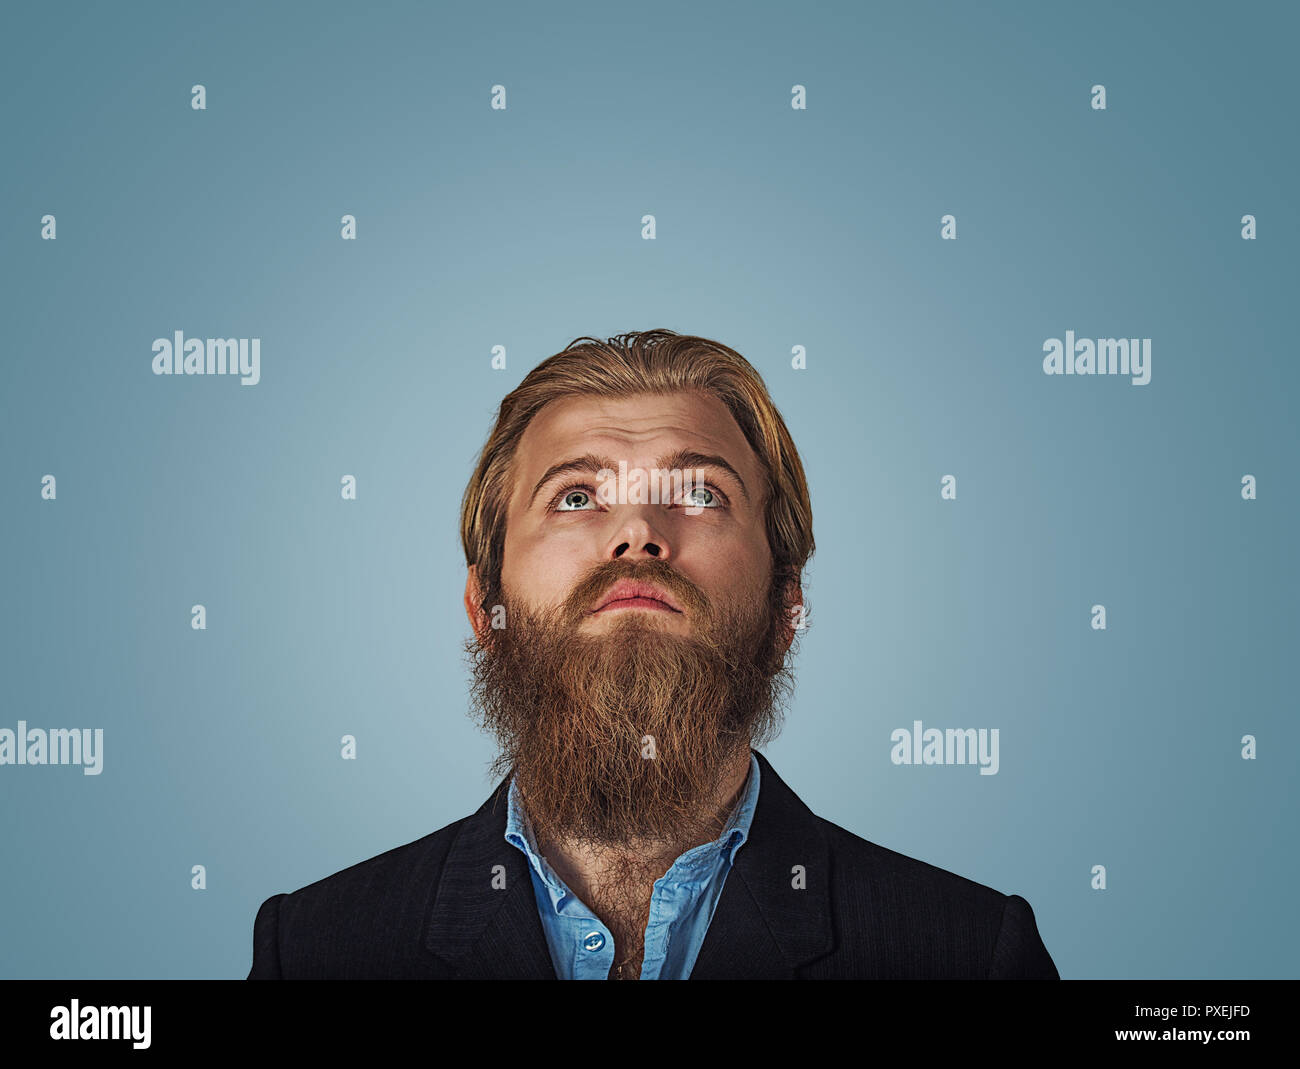 Head shot confused serious hipster business man thinking looking up thoughtful isolated on gray grey wall background with copy space above head. Human - Stock Image